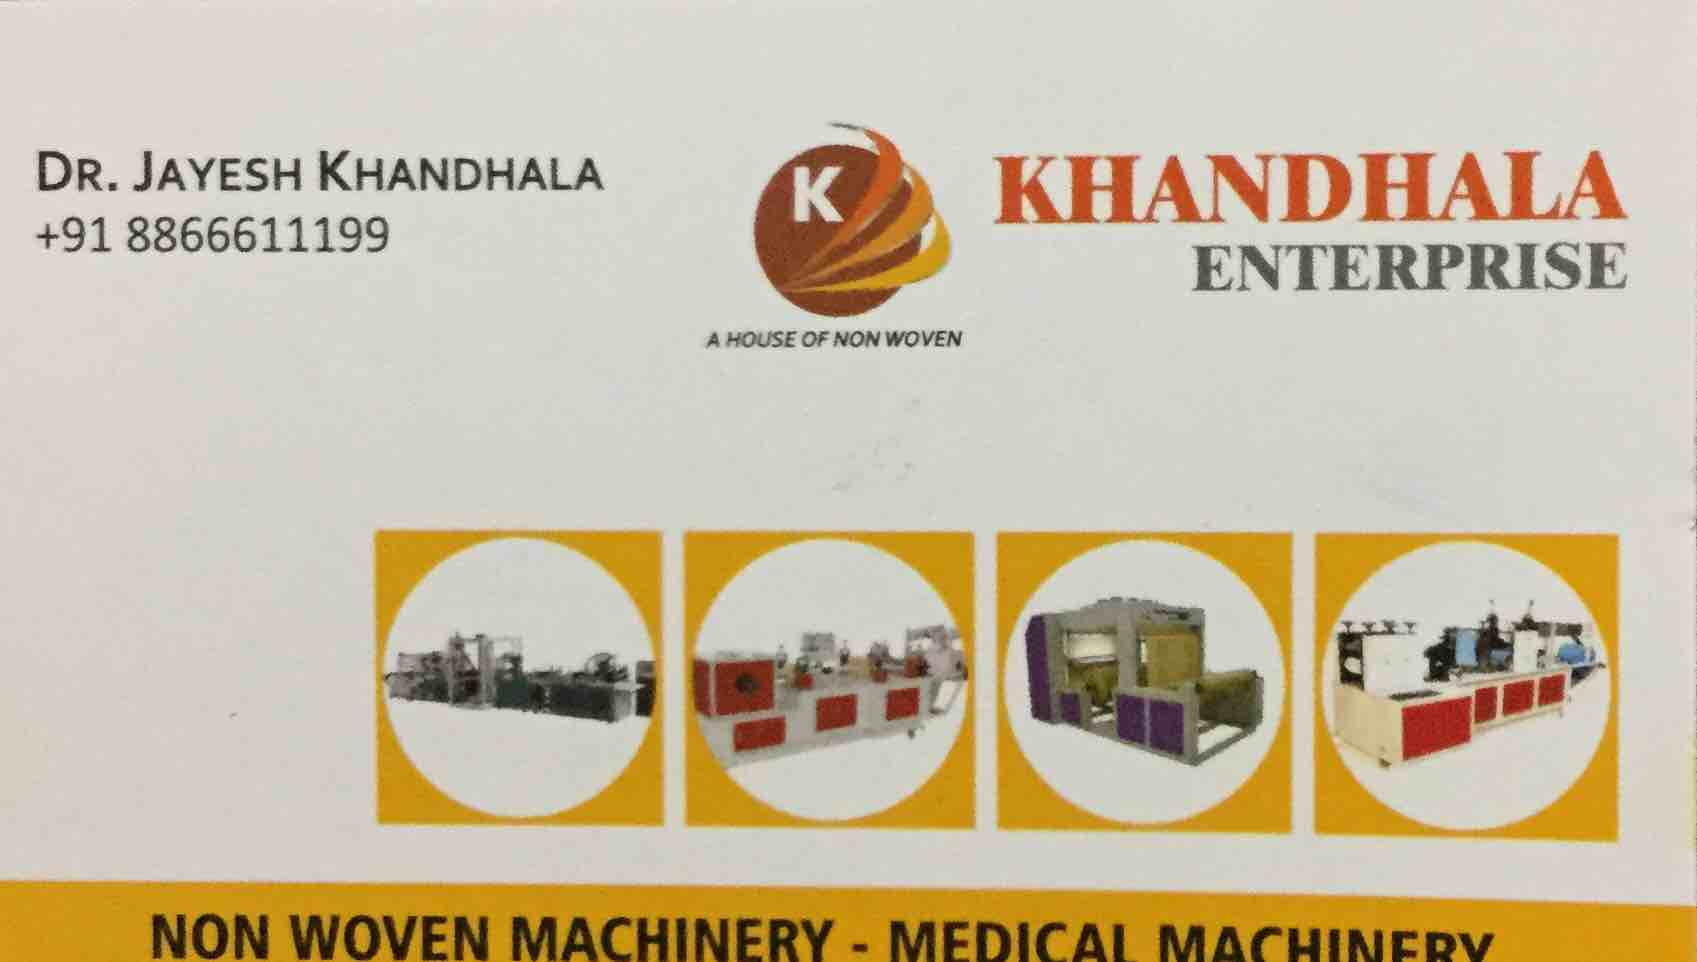 KHANDHALA ENTERPRISE